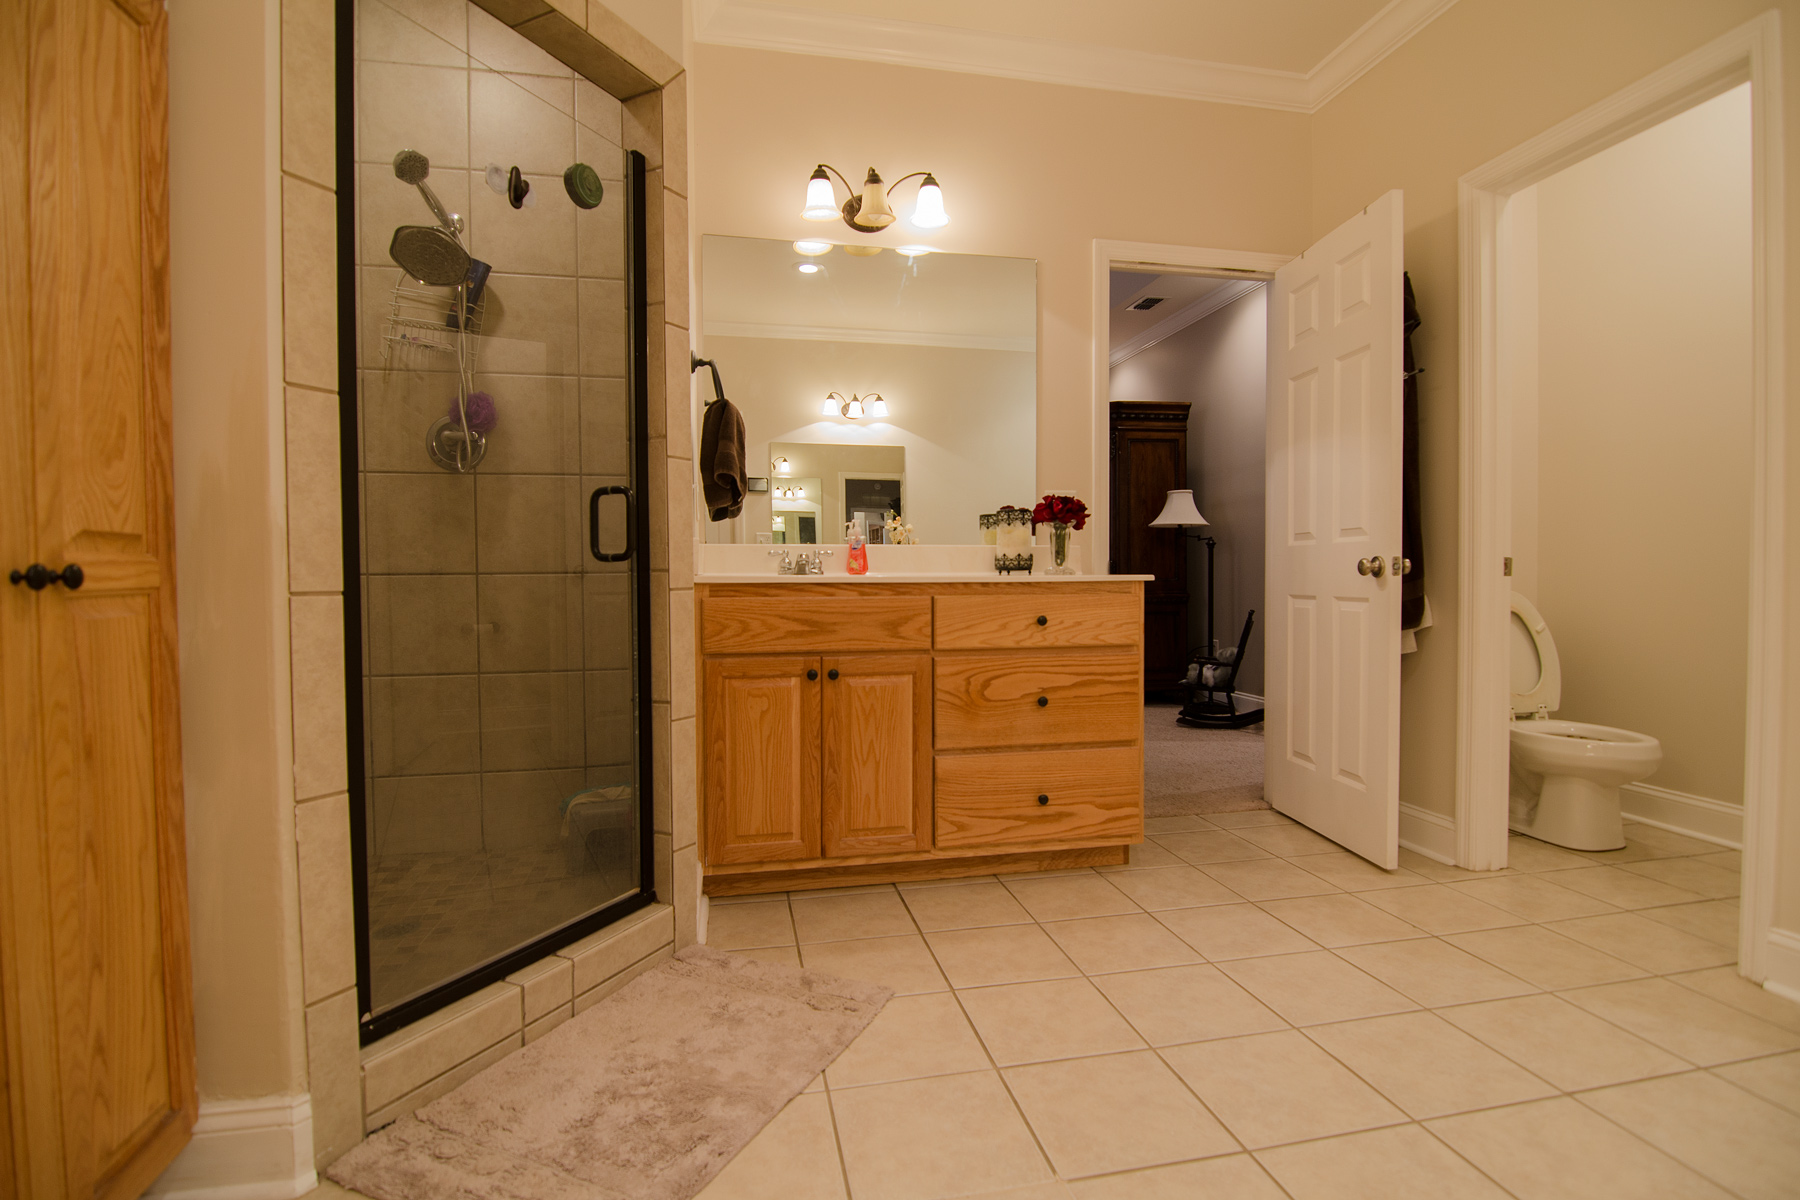 3riversrealty-masterbath3.jpg